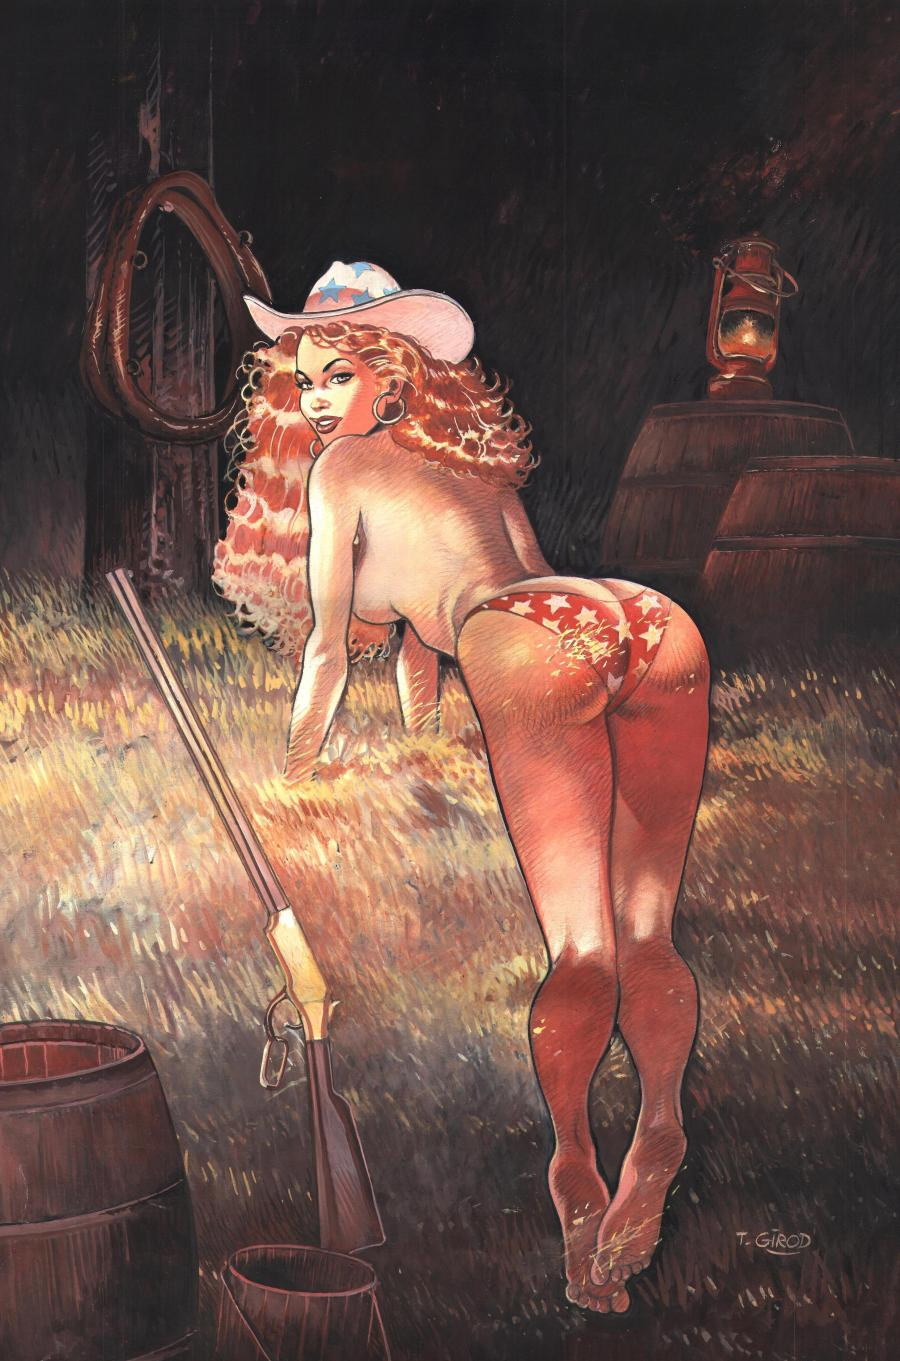 Original illustration in watercolors and gouache - The grange girl - from WESTERN CORSET